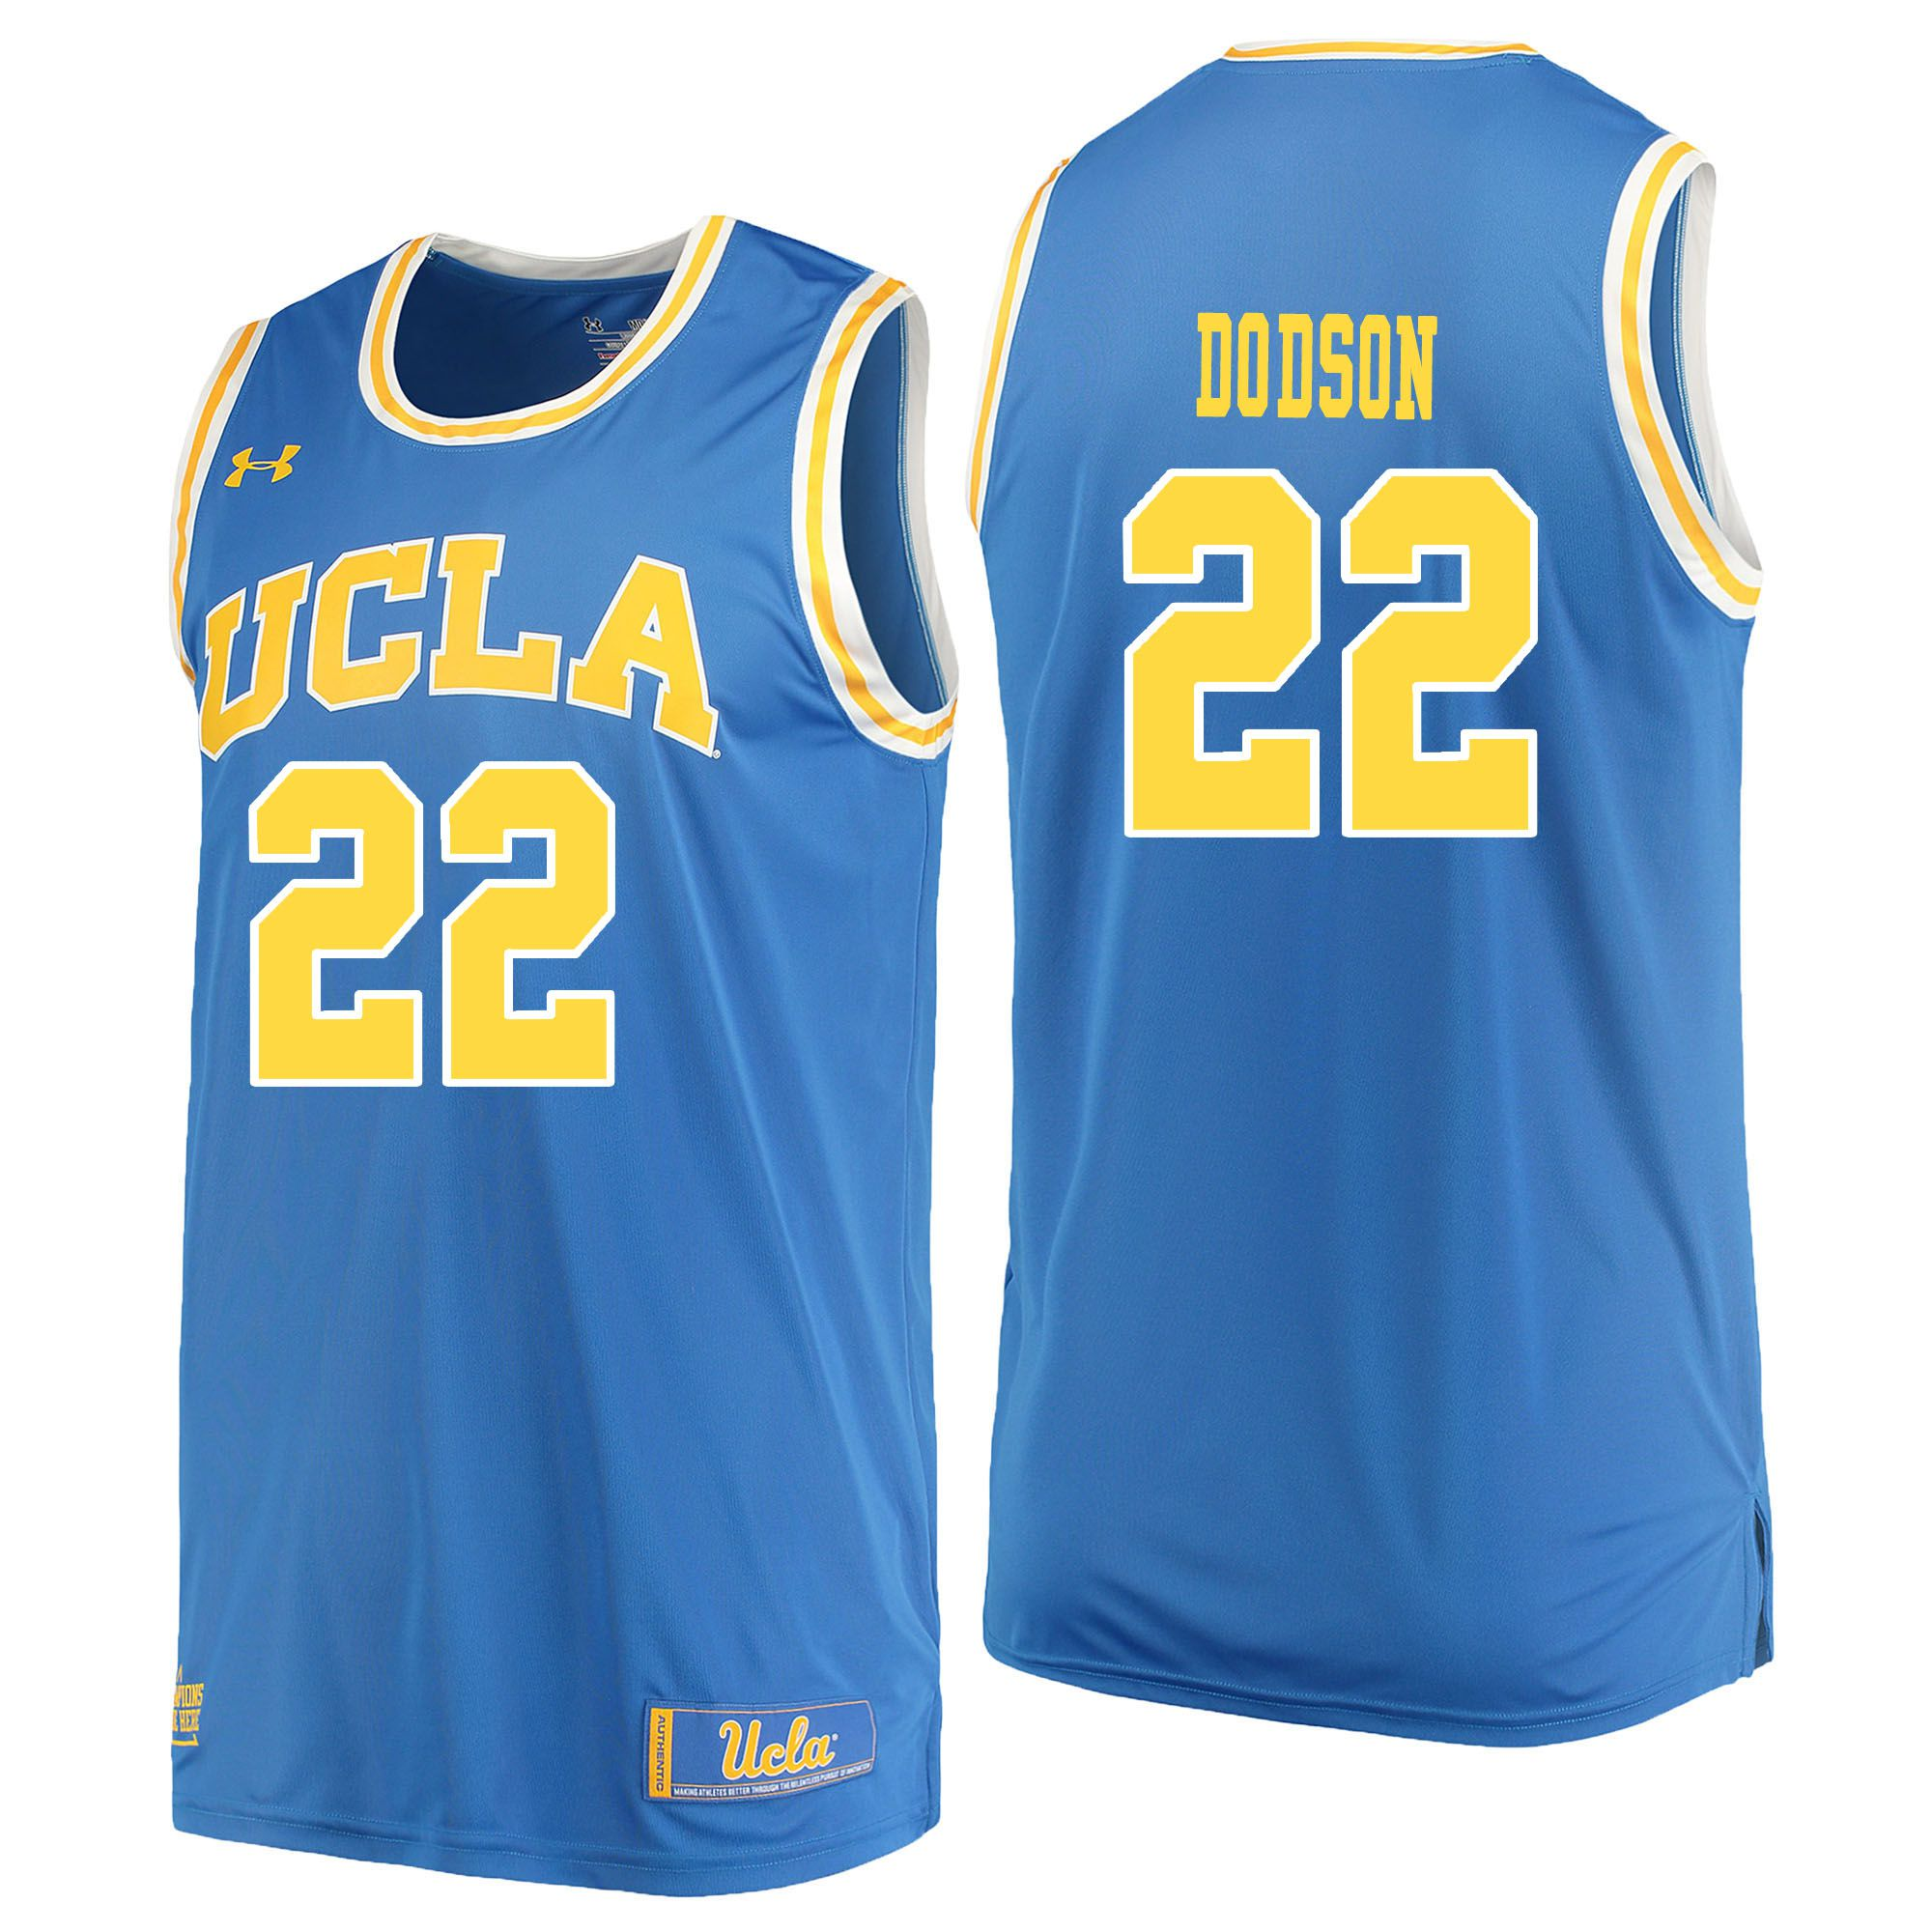 Men UCLA UA 22 Dodson Light Blue Customized NCAA Jerseys